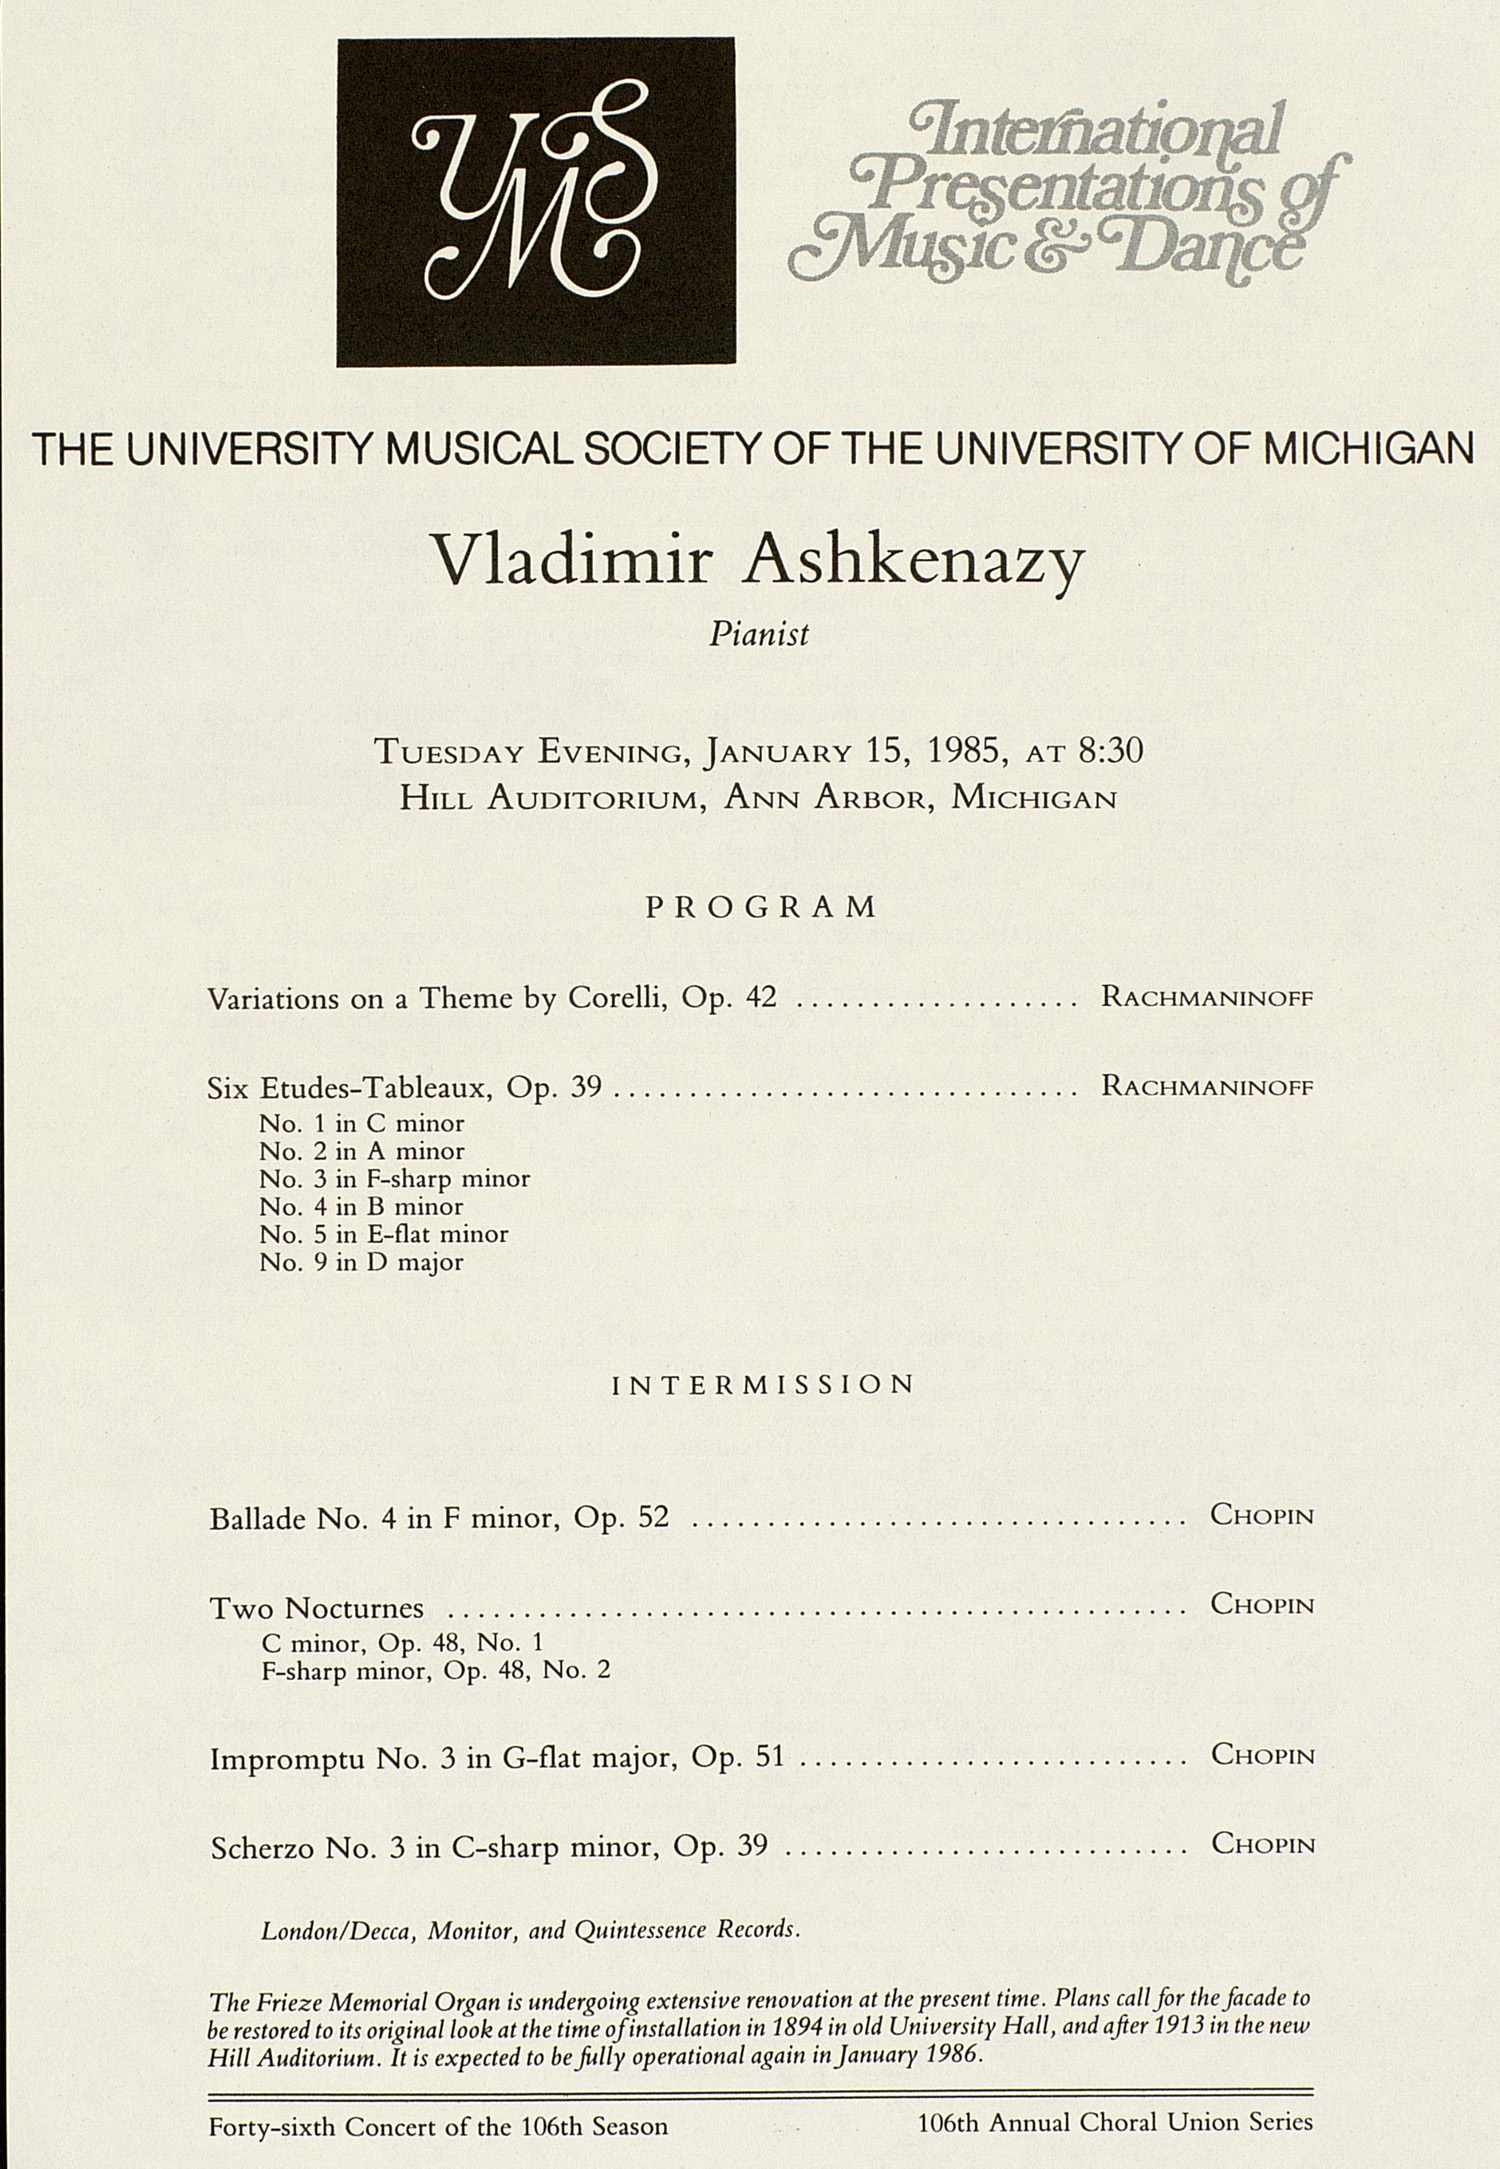 UMS Concert Program, January 15, 1985: International Presentations Of Music & Dance --  image